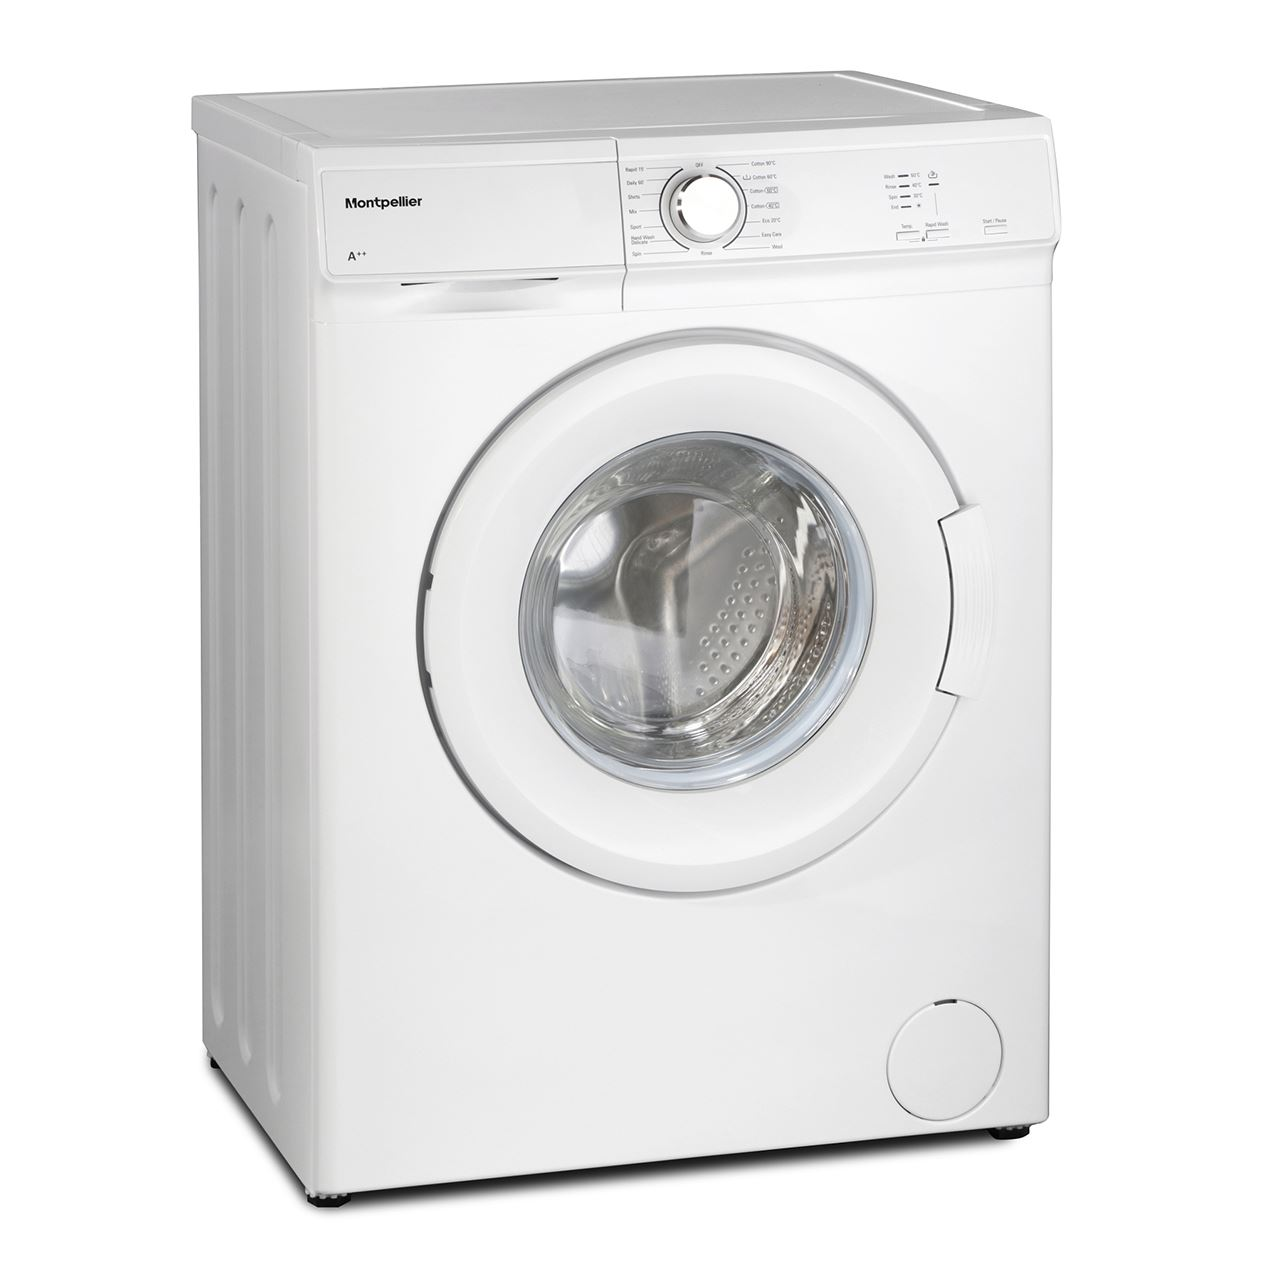 Montpellier Mw5101p 5kg Washing Machine